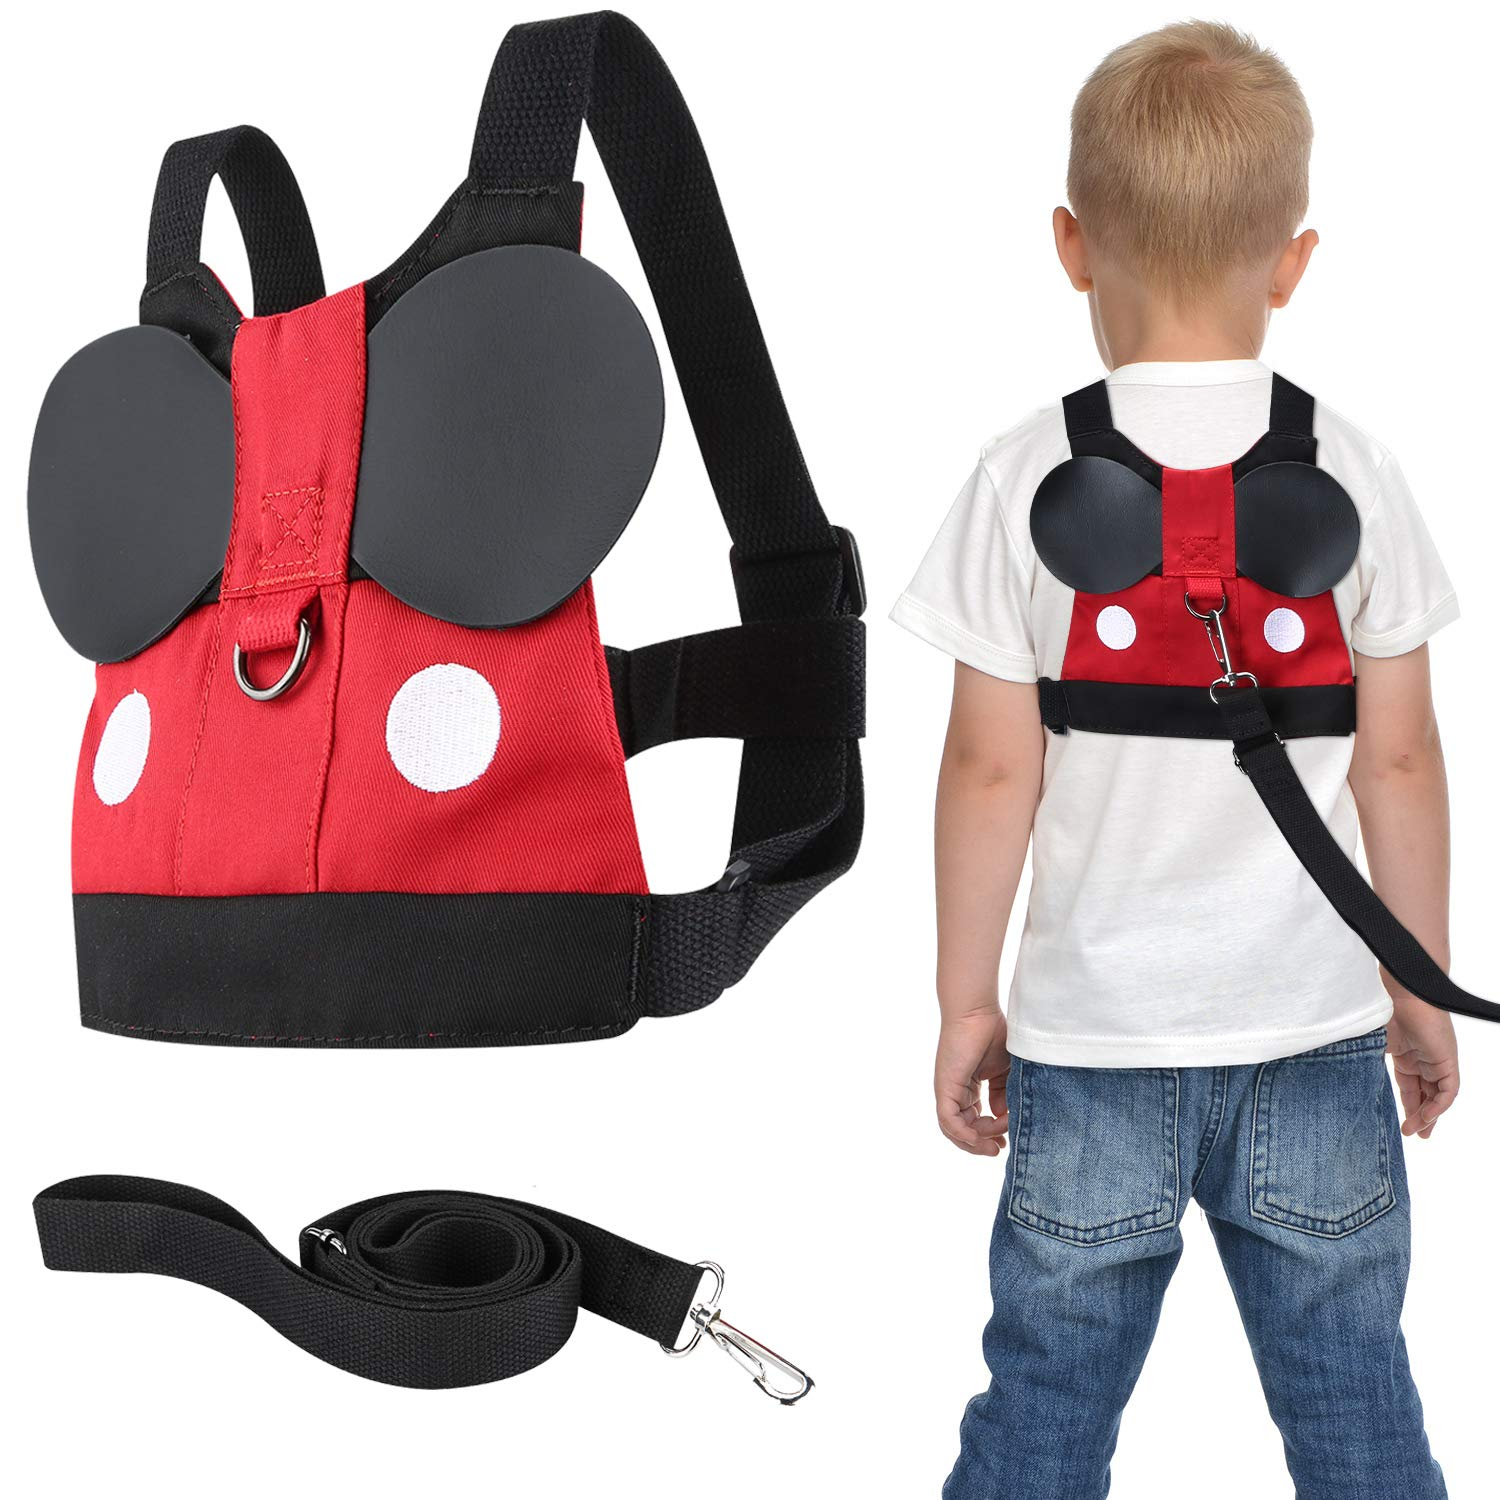 Top 13 Best Child Leash, Backpacks, Straps, Harness (2020 Reviews & Buying Guide) 3